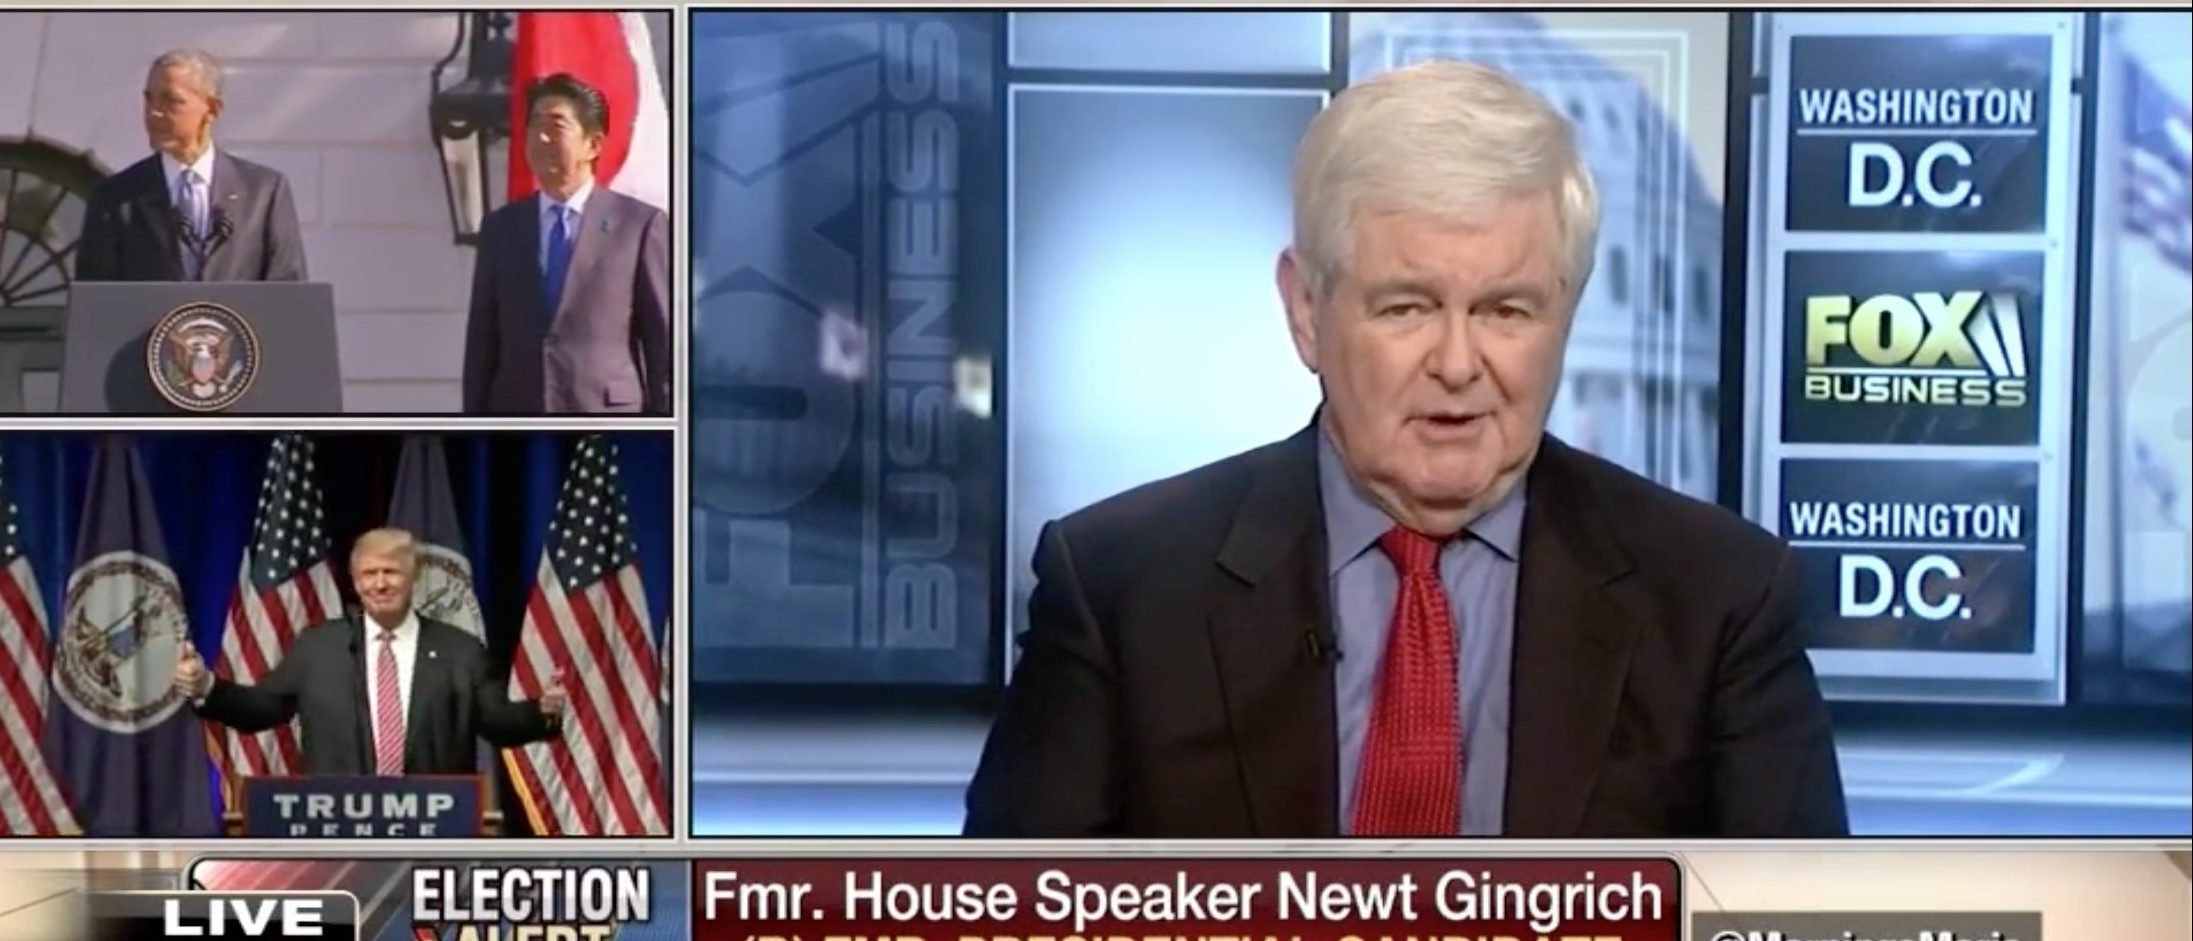 Newt Gingrich, Screen Grab FBN, 8-3-2016